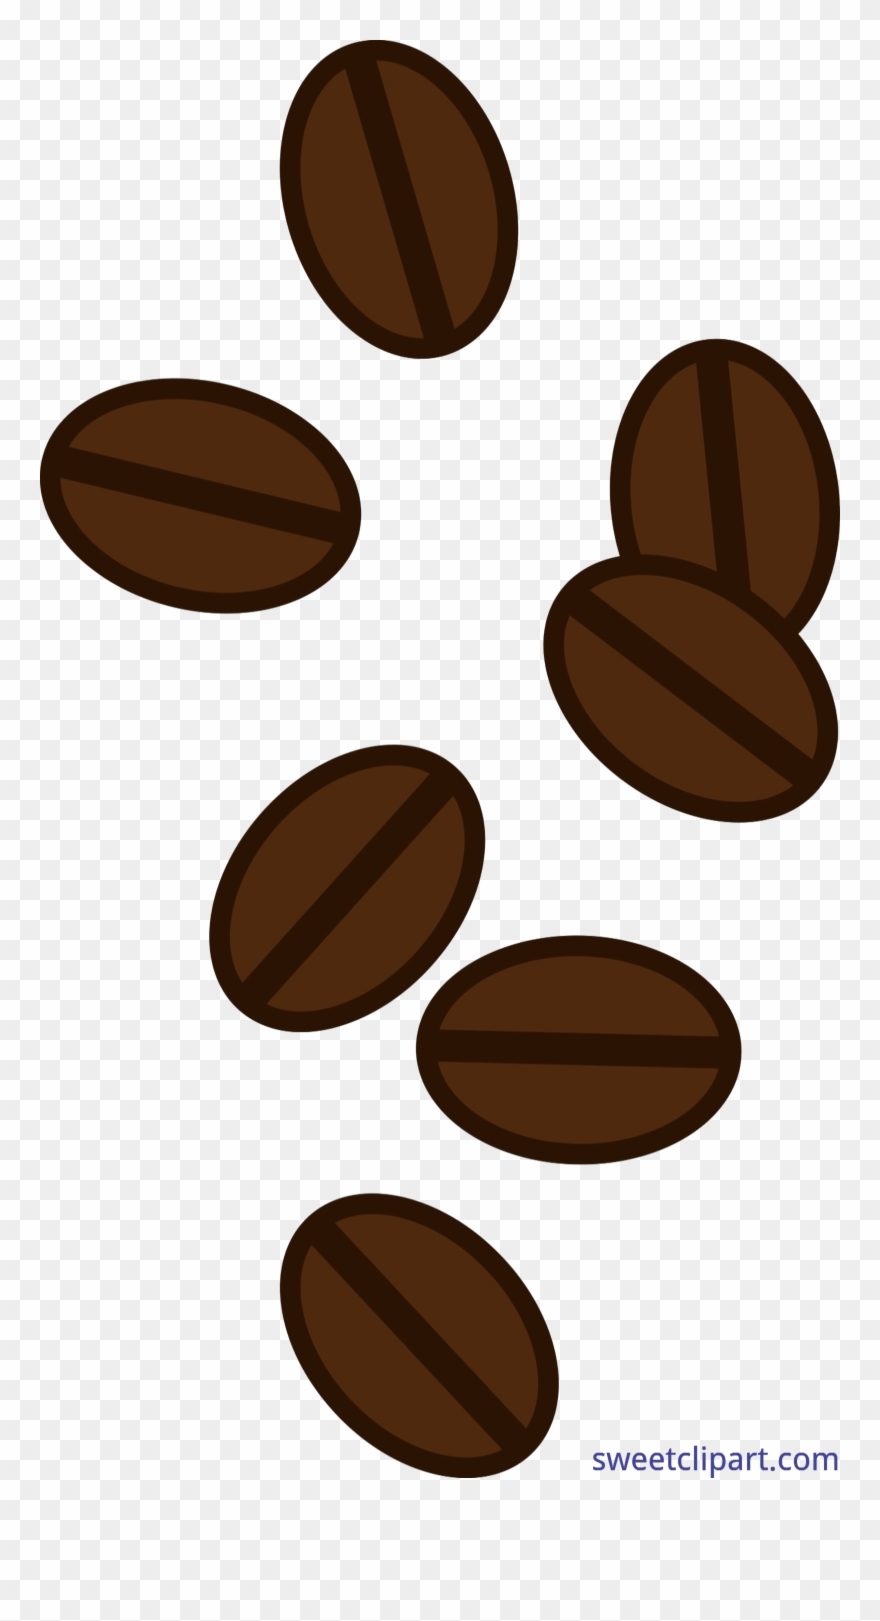 Bean clipart transparent. Picture library coffee beans